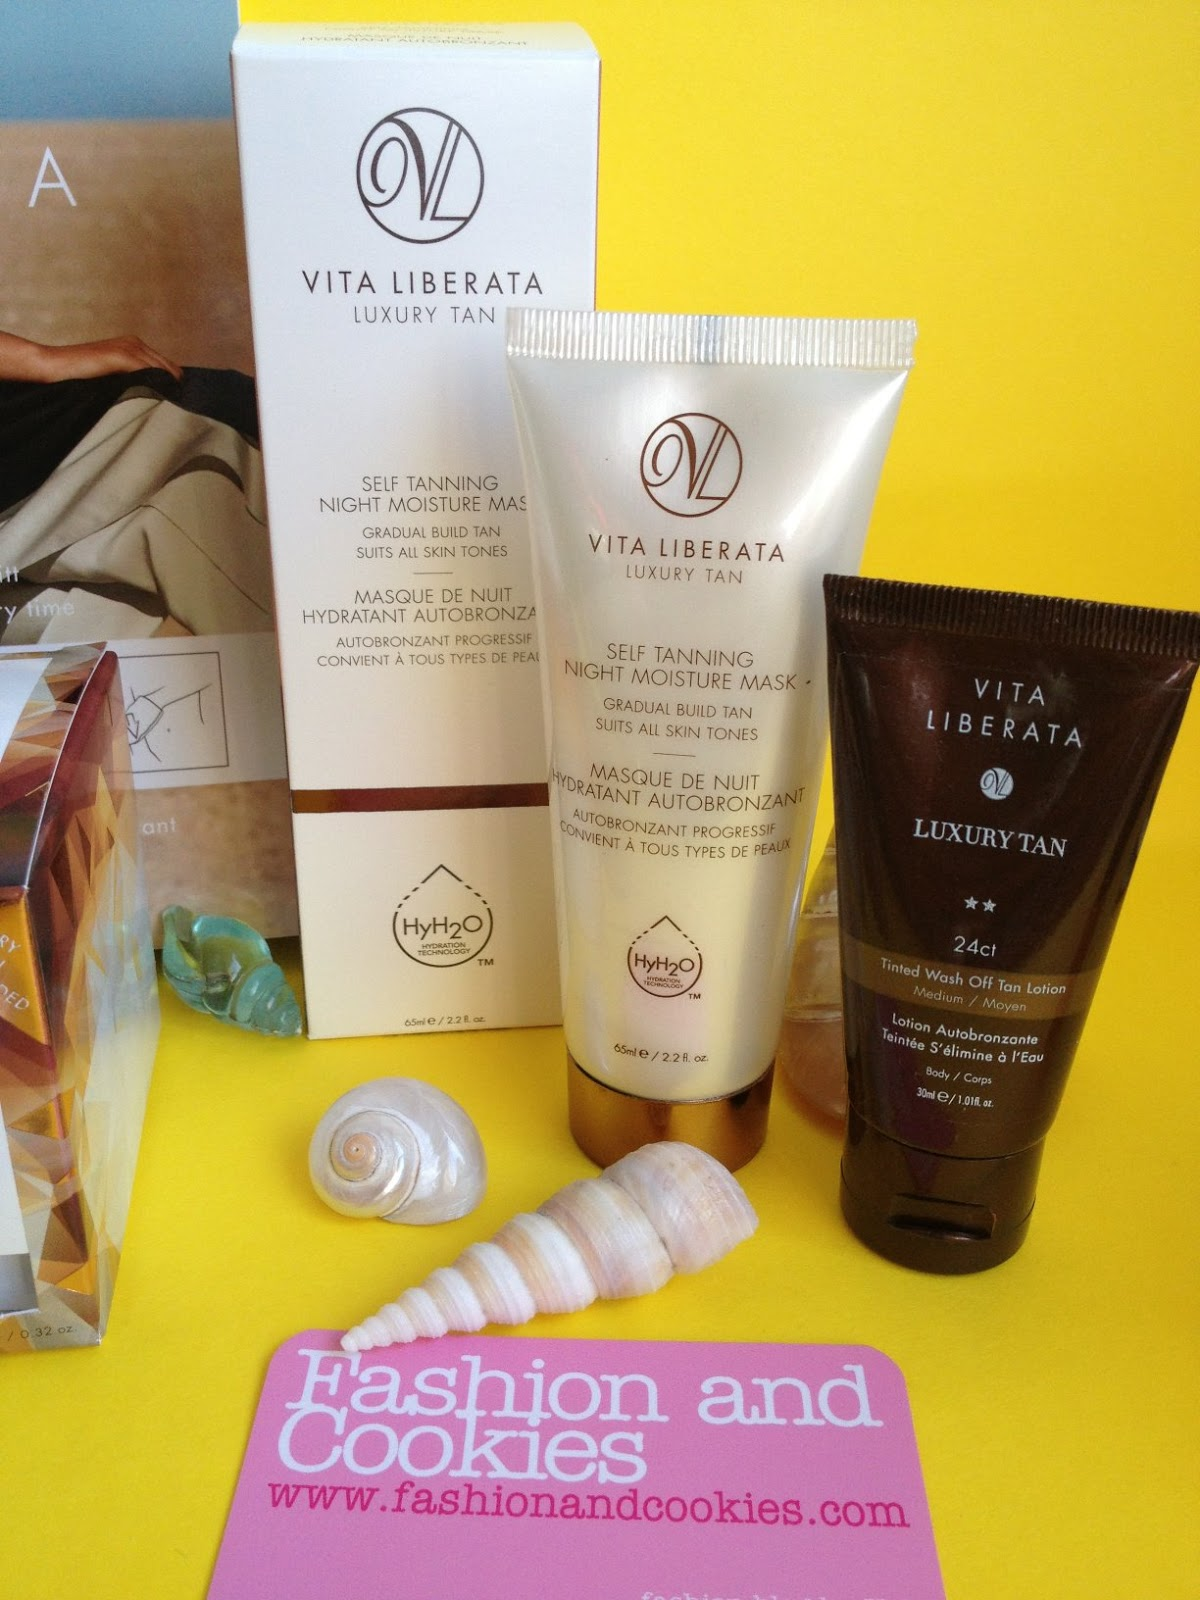 How to get a tan quickly and safely with Vita Liberata on Fashion and Cookies fashion and Beauty blog: Self Tanning Night Moisture Mask